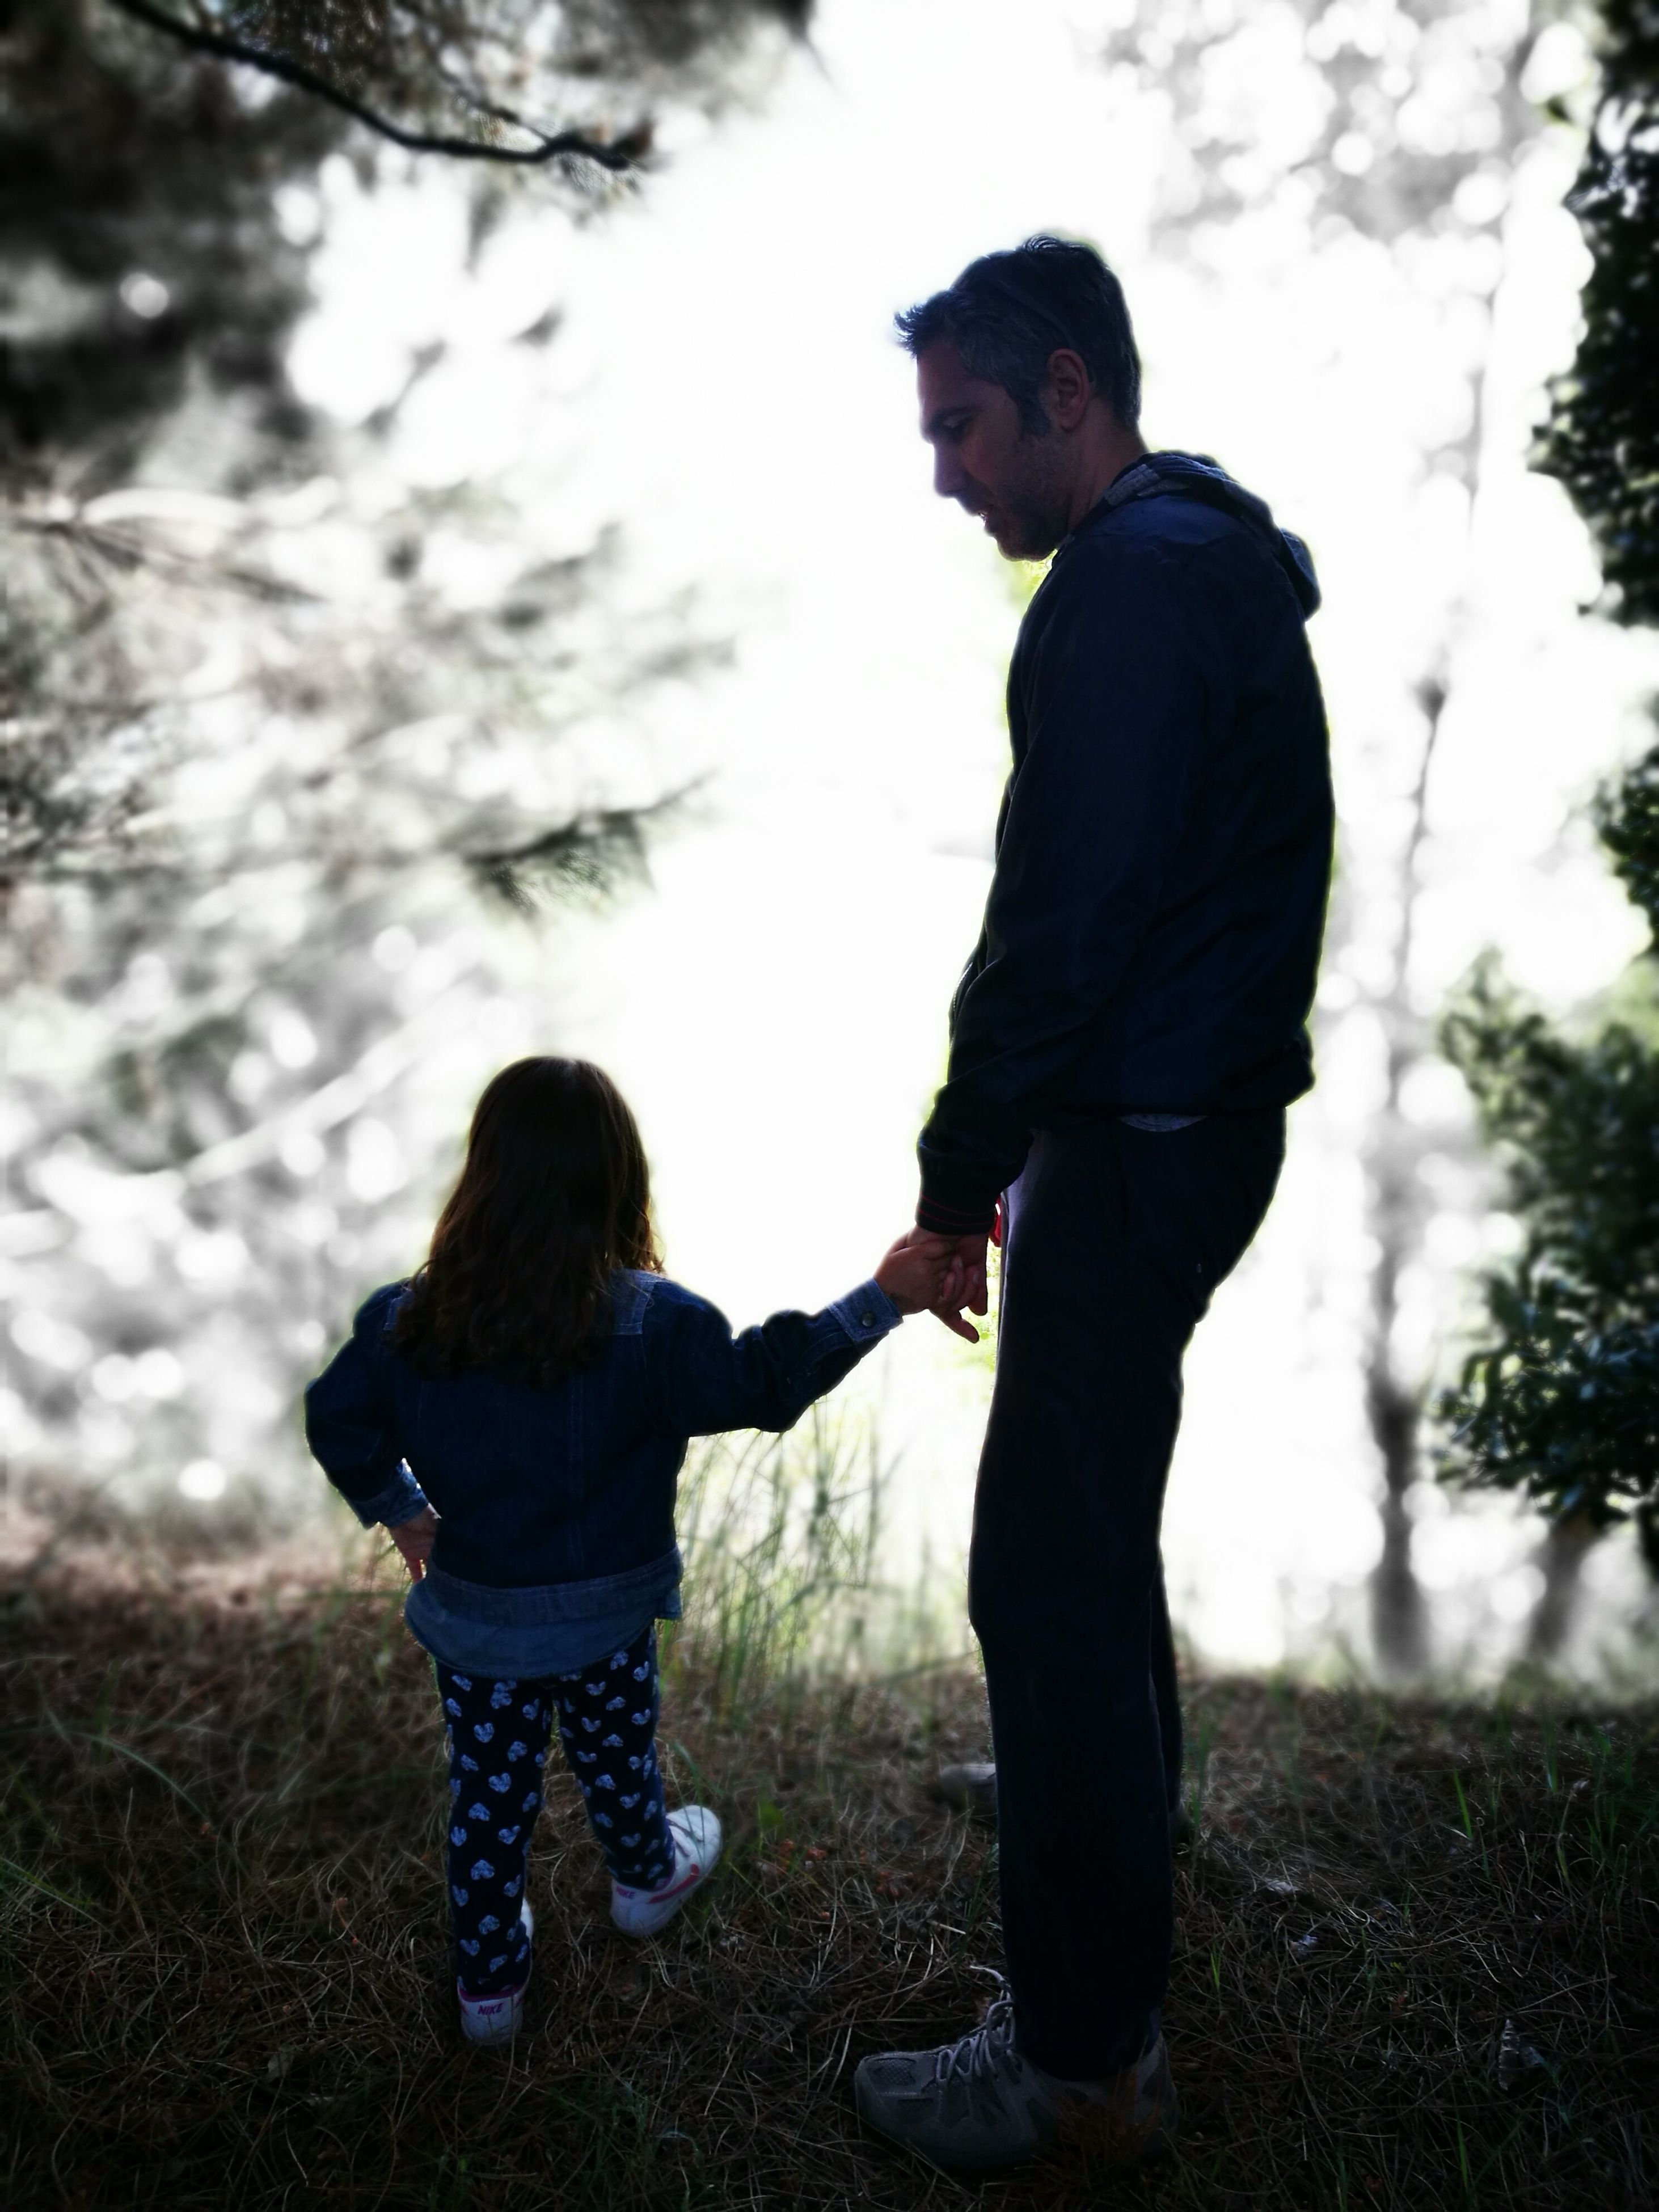 family with one child, togetherness, love, father, real people, full length, bonding, family, childhood, casual clothing, standing, leisure activity, lifestyles, men, son, outdoors, sky, grass, nature, day, young adult, tree, human hand, adult, people